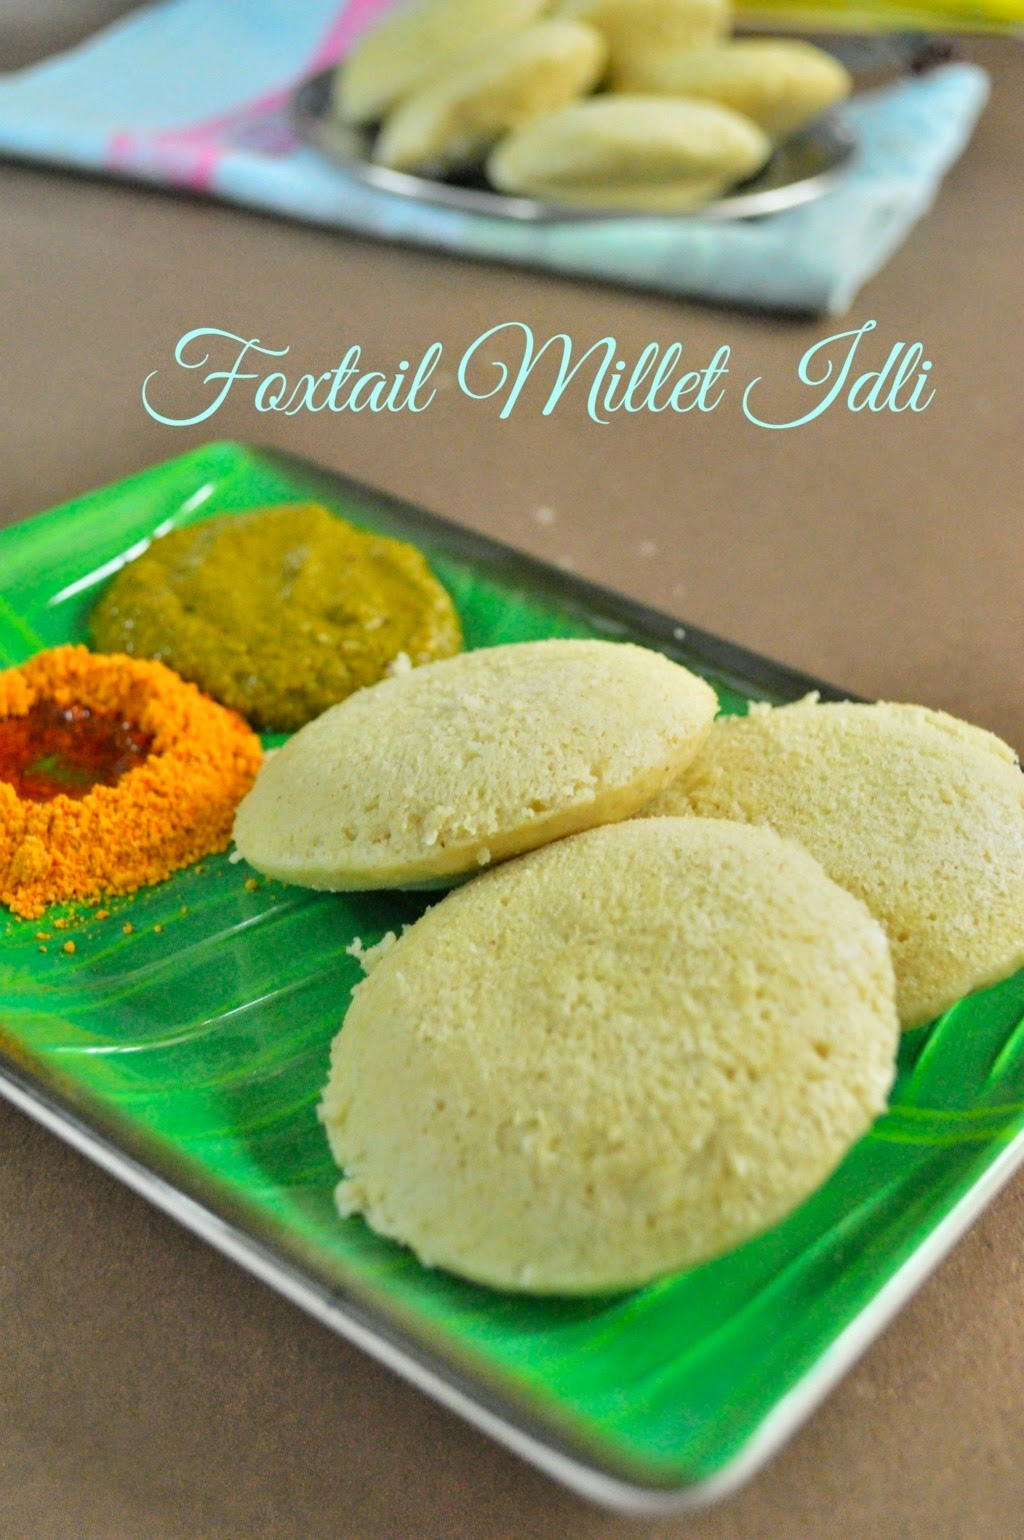 thinai idli recipe, Foxtail Millet Recipes, Breakfast Recipes, thinai recipes, idli recipes, how to make millet recipes, millet easy recipes, easy millet foods, healthy food recipes, healthy foods